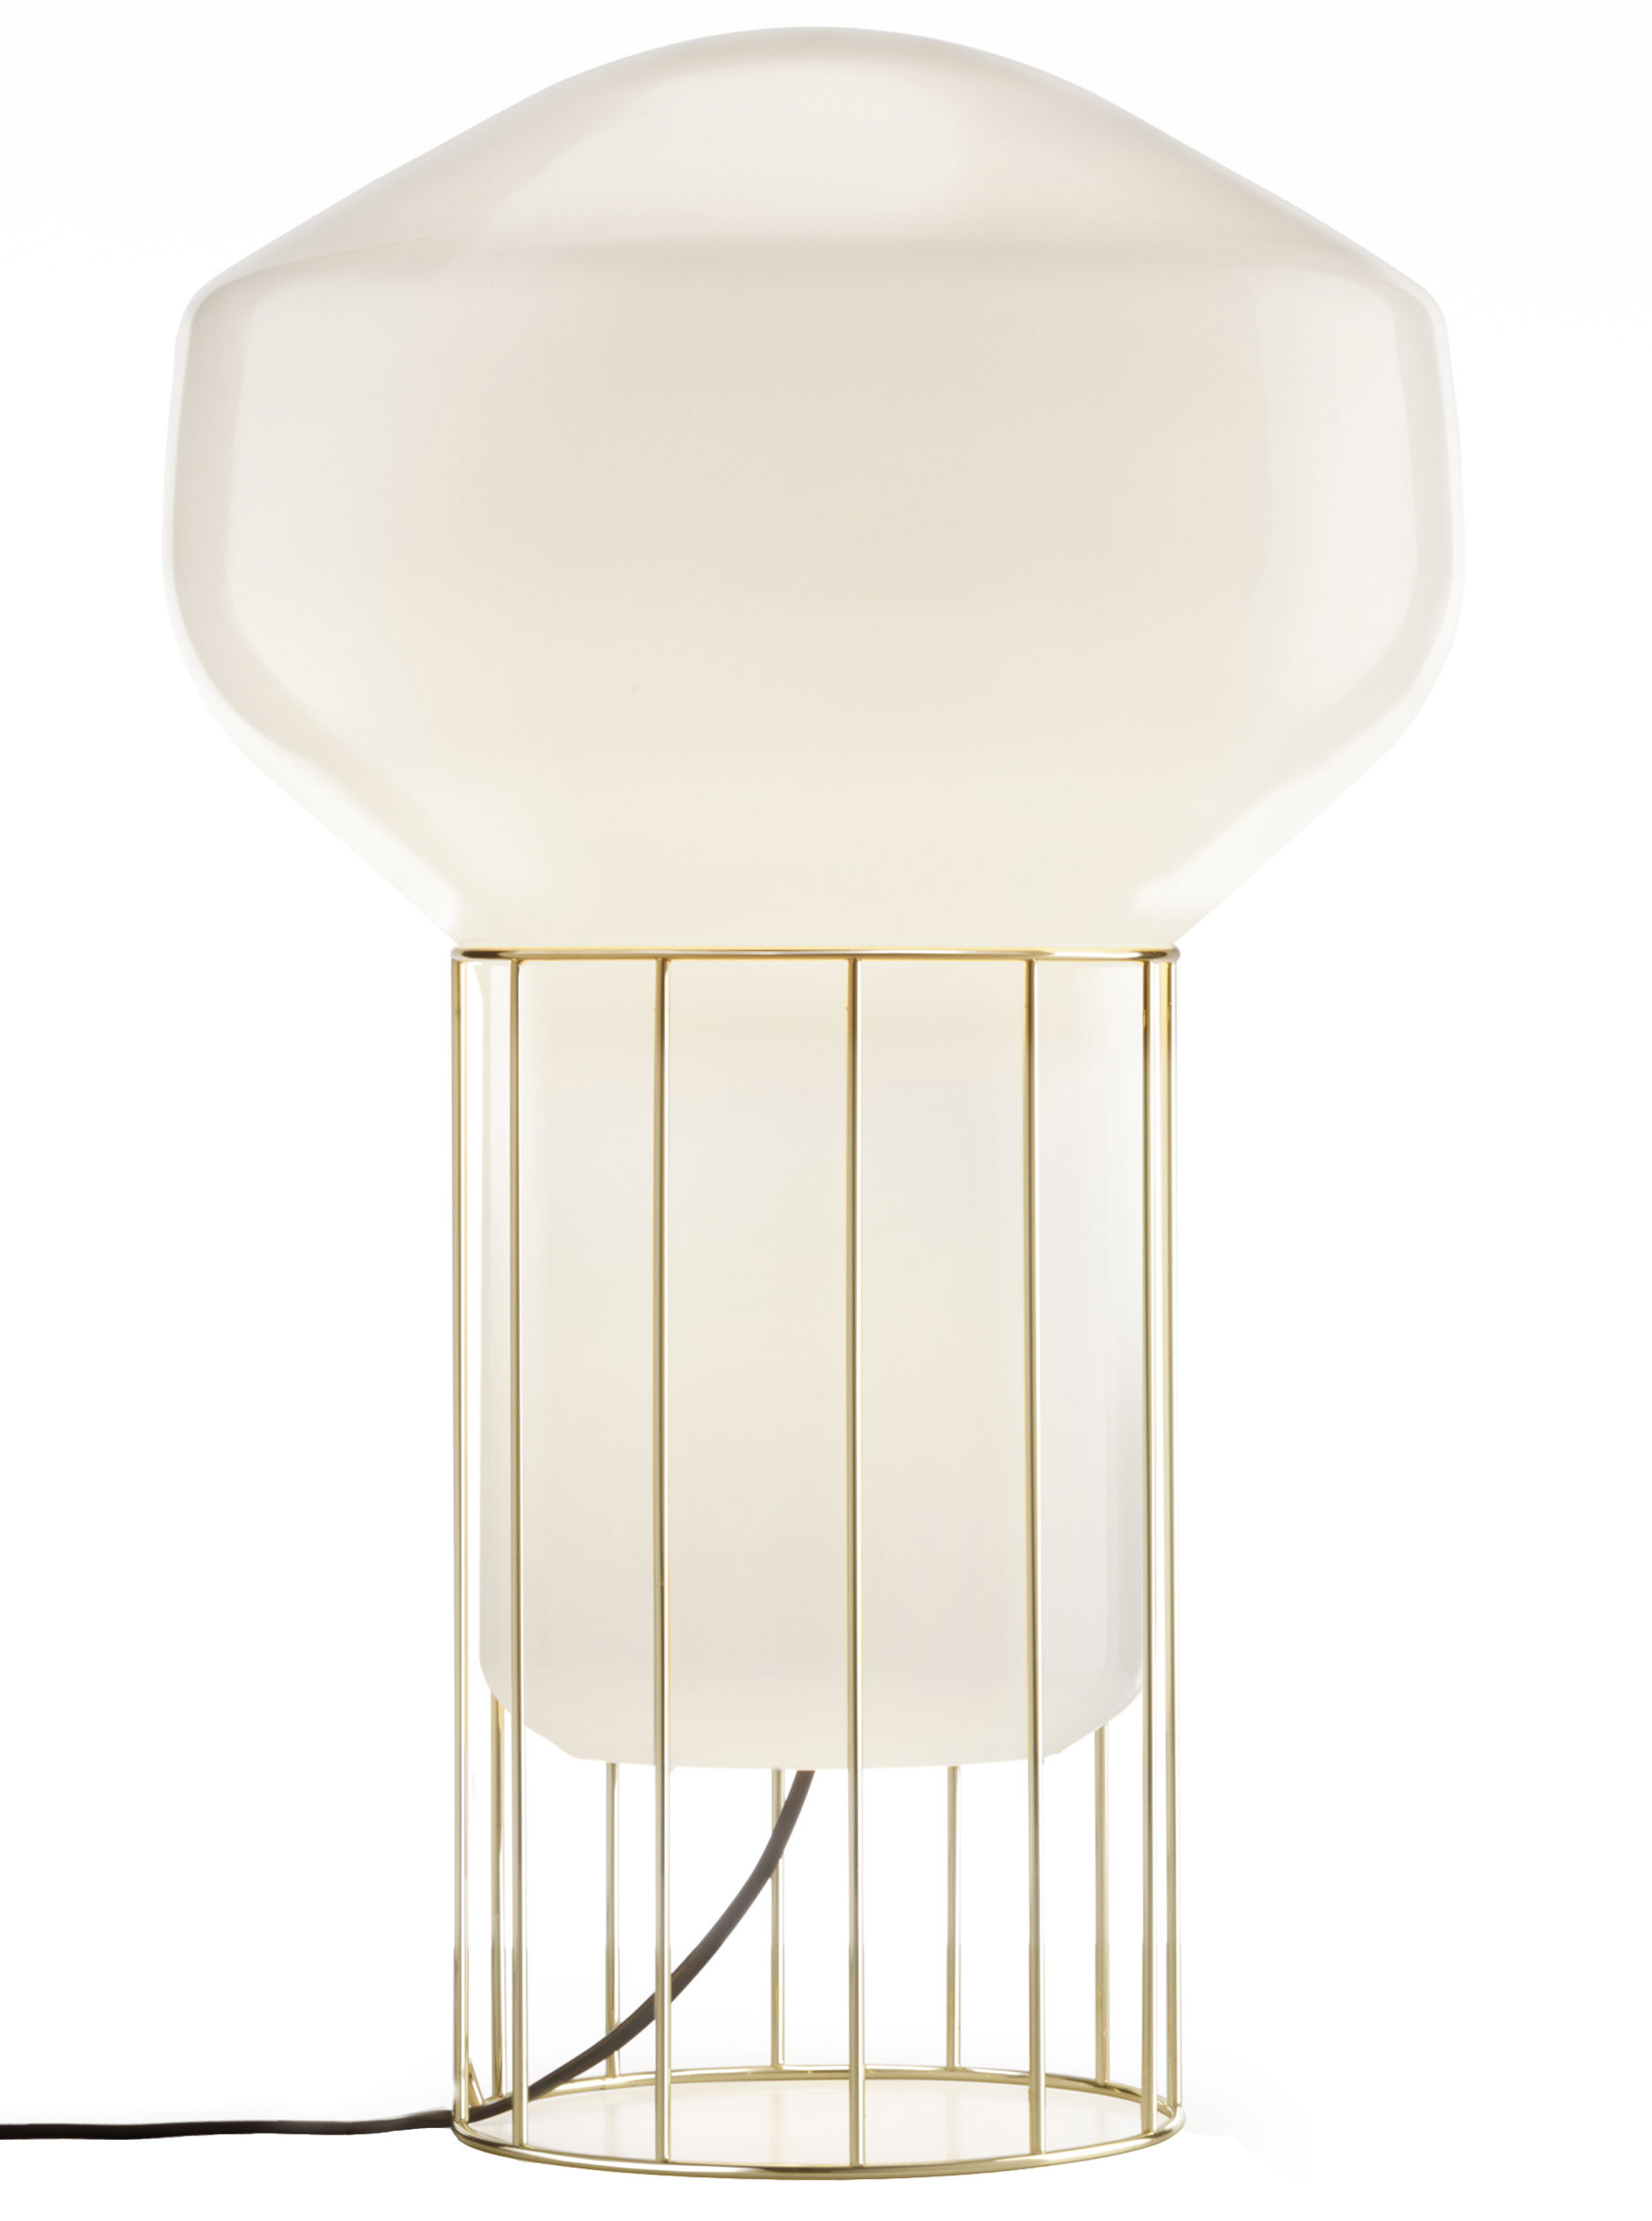 Lighting - Floor Lamps - Aérostat Media Lamp by Fabbian - Brass structure / White diffuser - Brass plated metal, Opalin mouth blown glass